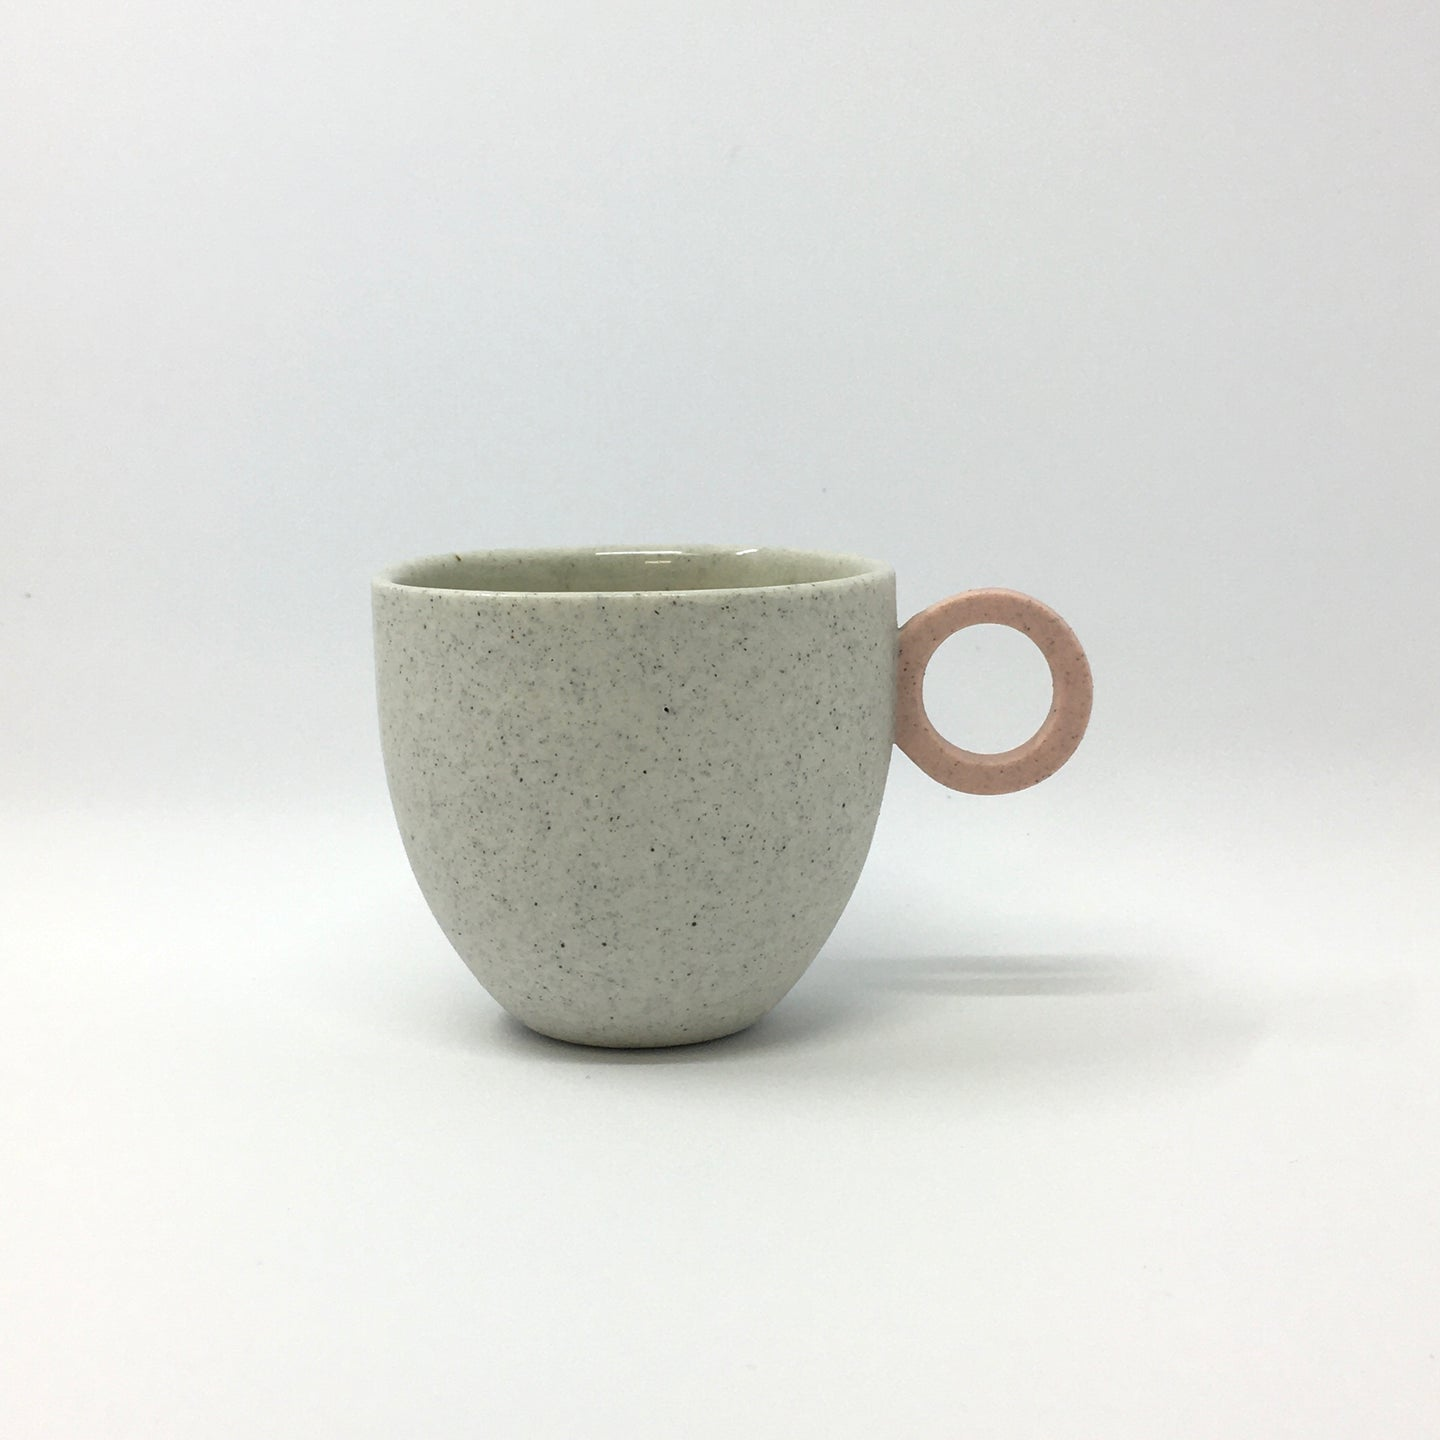 Matt Speckle White Espresso Cup